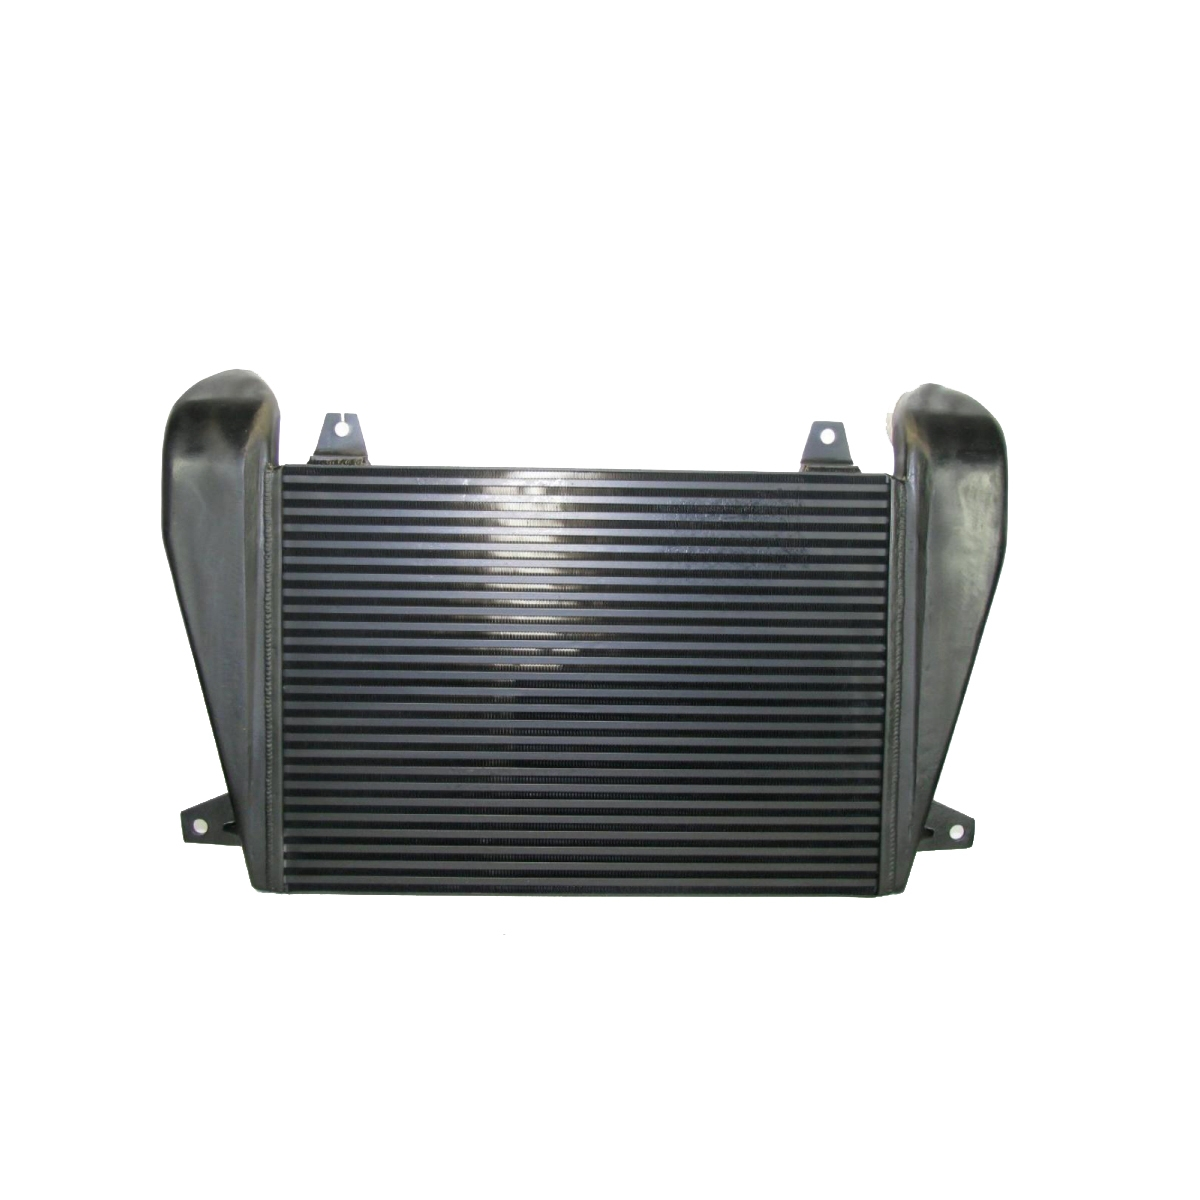 freightliner century class 82 02 charge air cooler oem 4863905001 2